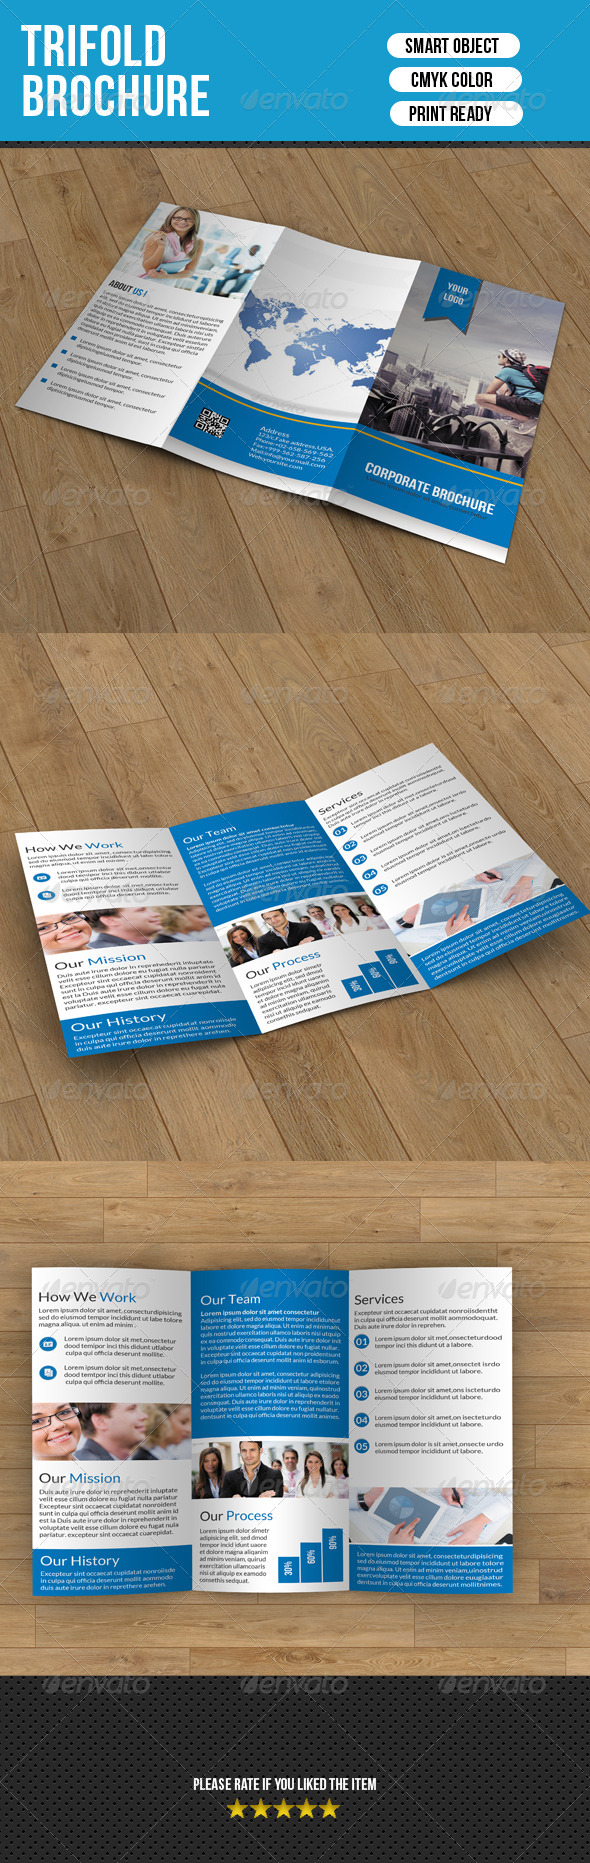 GraphicRiver Trifold Brochure- Business 7348670